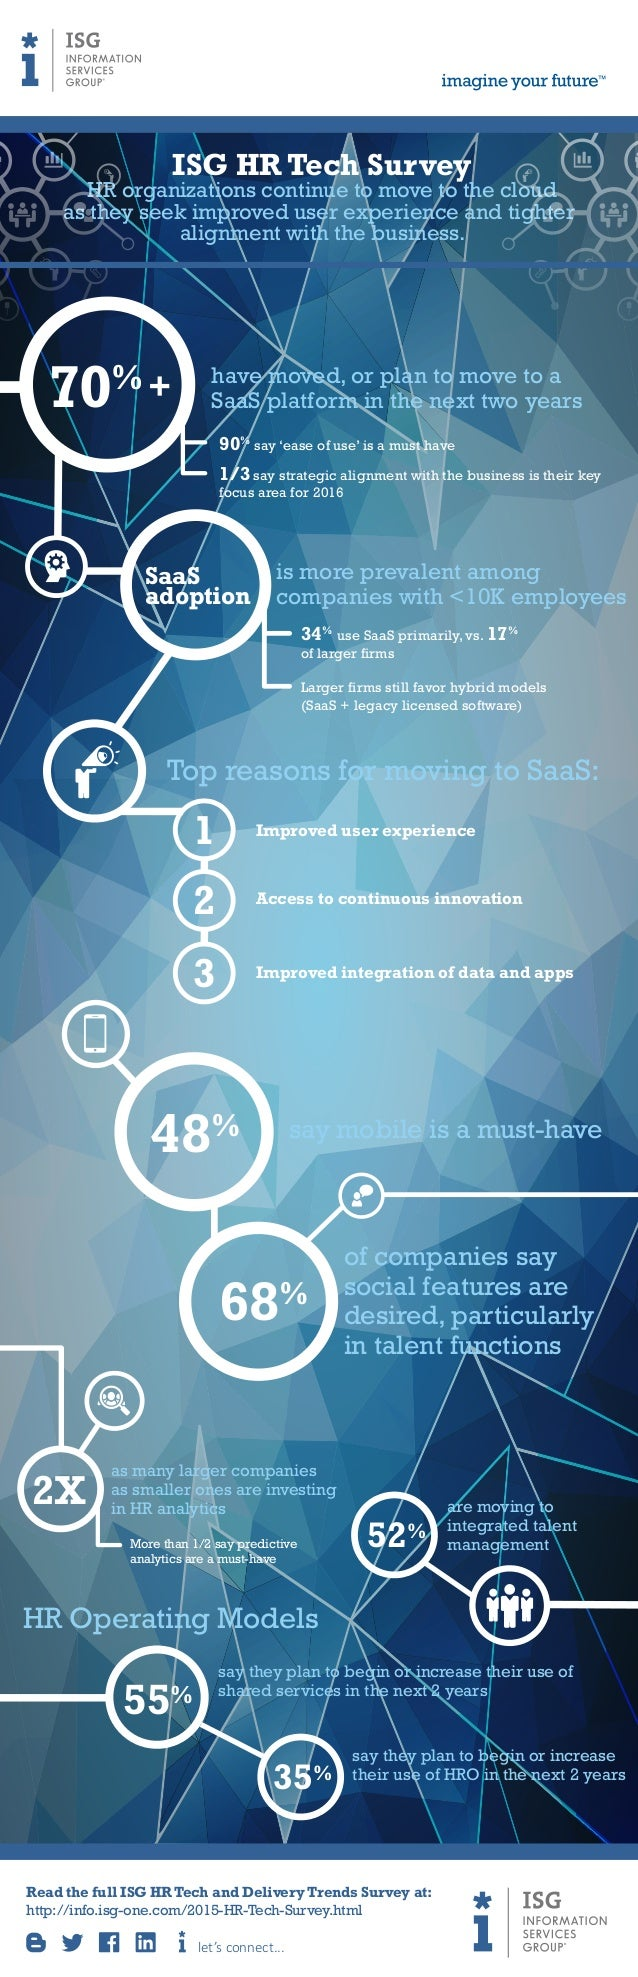 ISG HR Tech Survey HR organizations continue to move to the cloud as they seek improved user experience and tighter alignm...